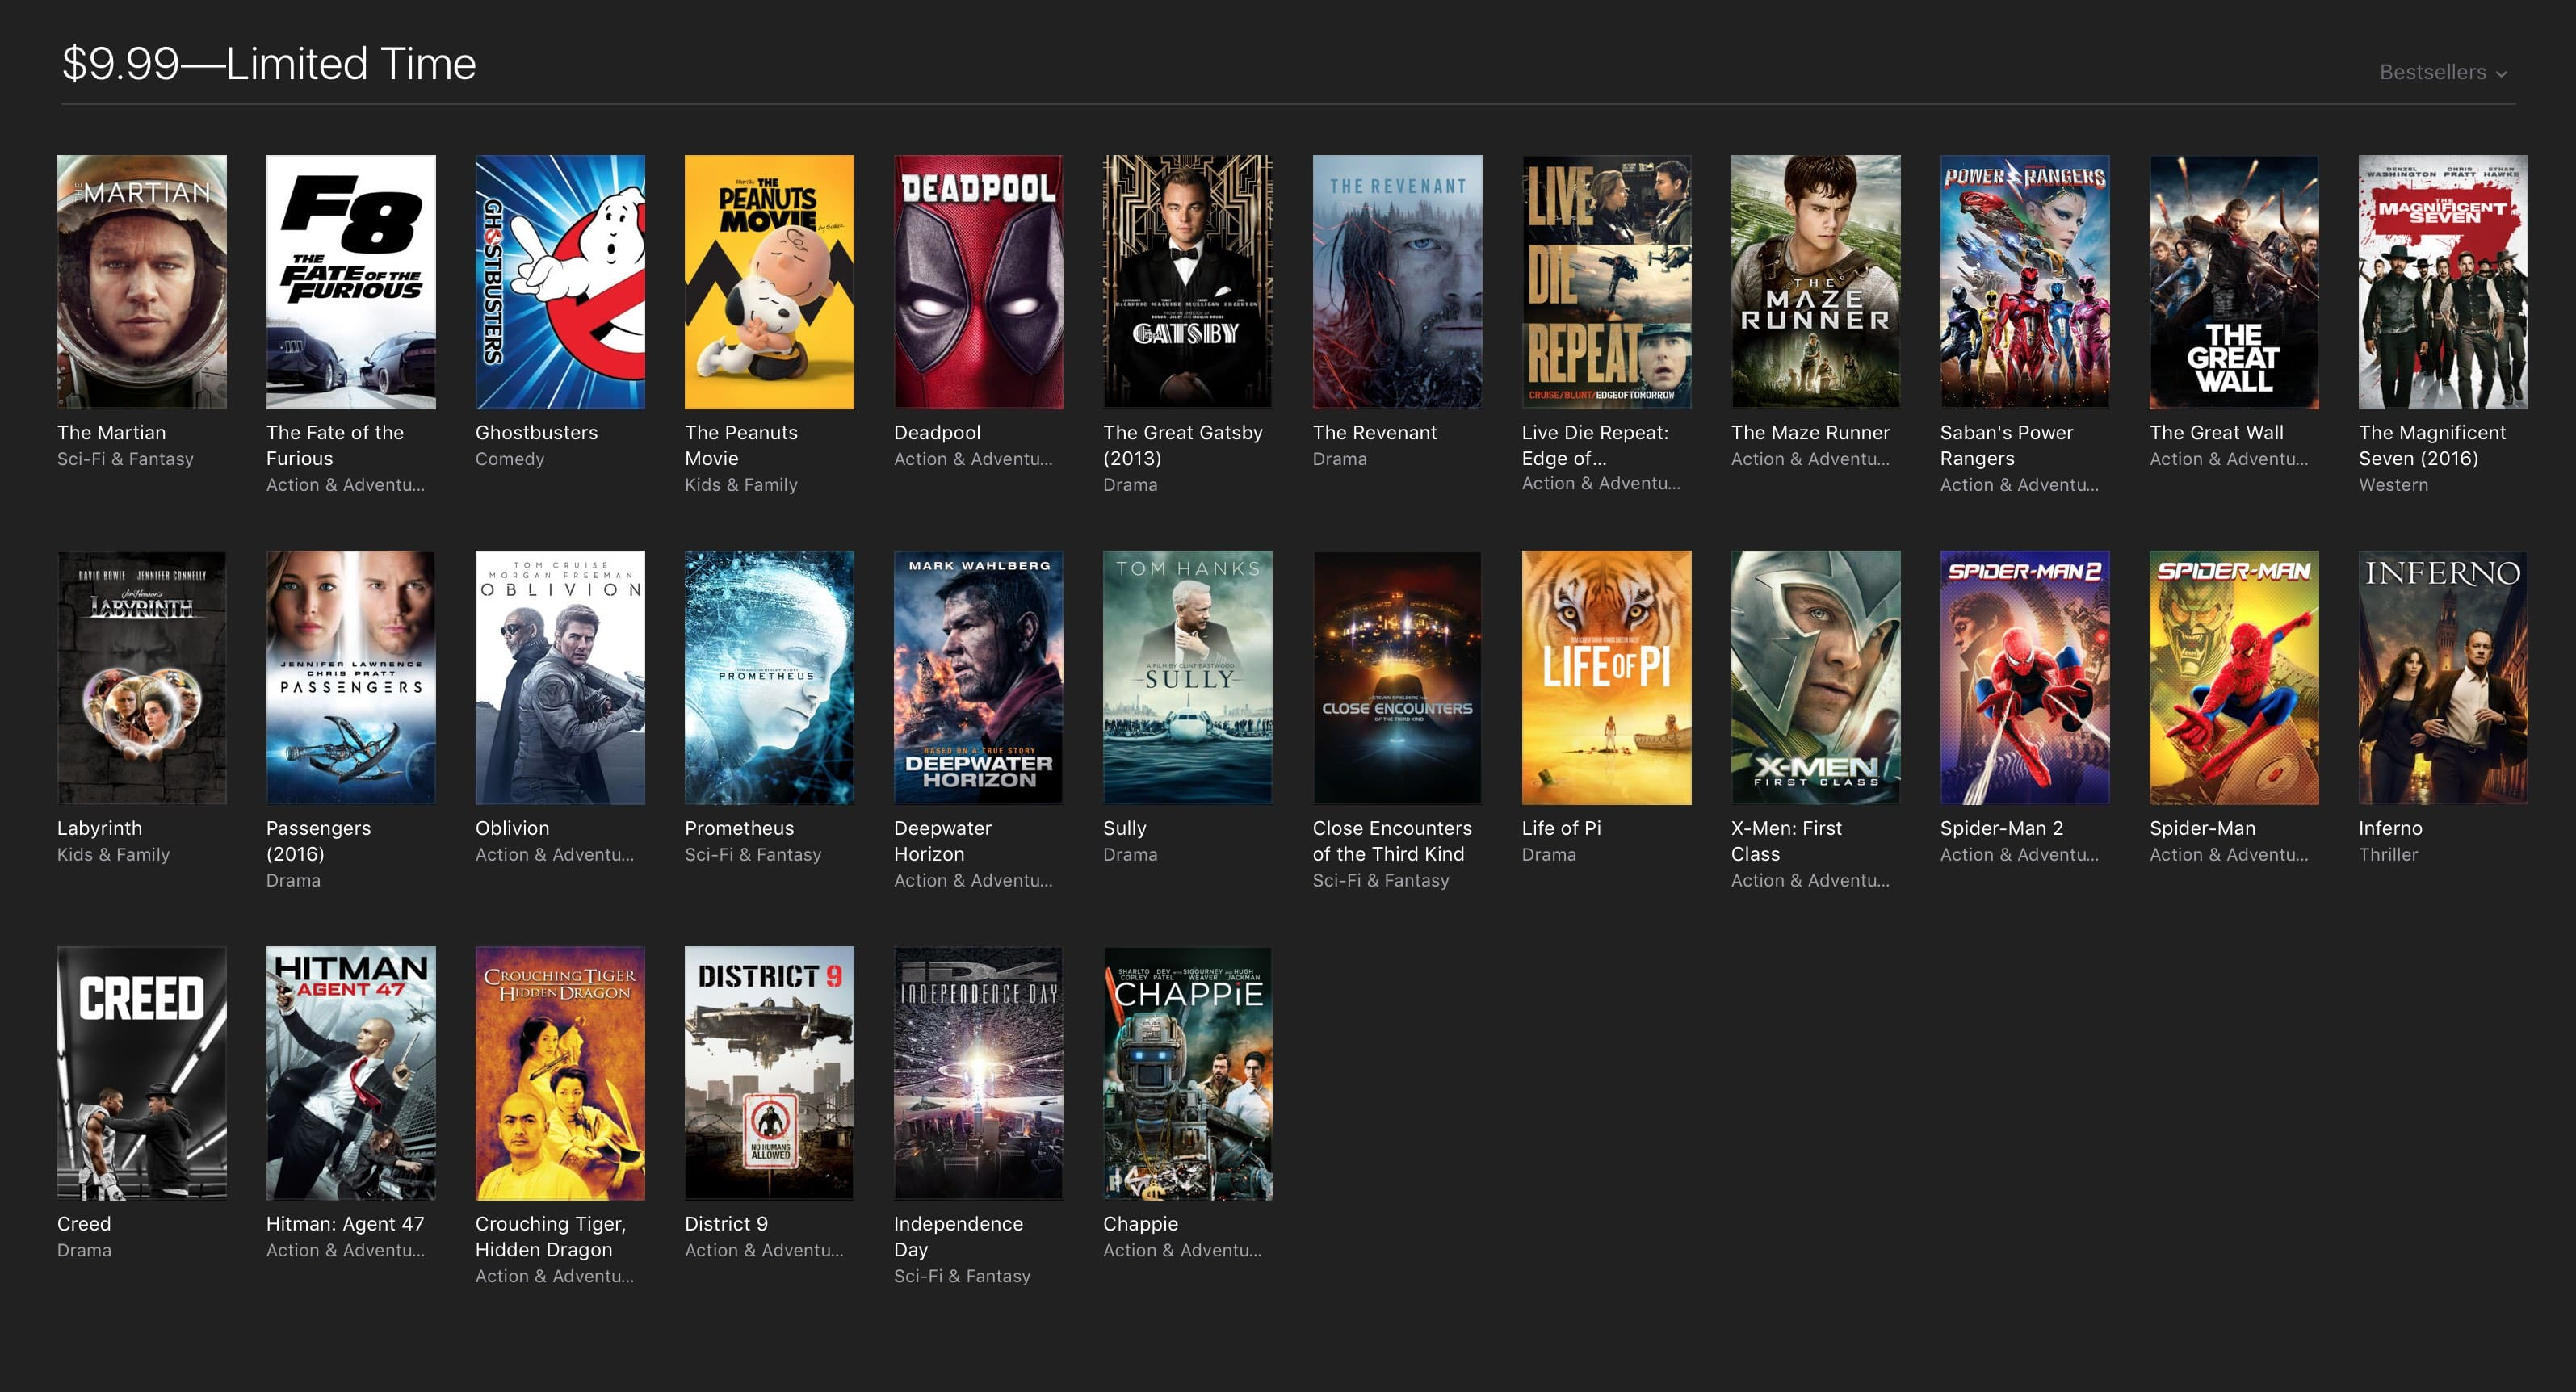 Apple 4K movies like The Martian/The Revenant (~30 movies) - only this weekend @ $9.99